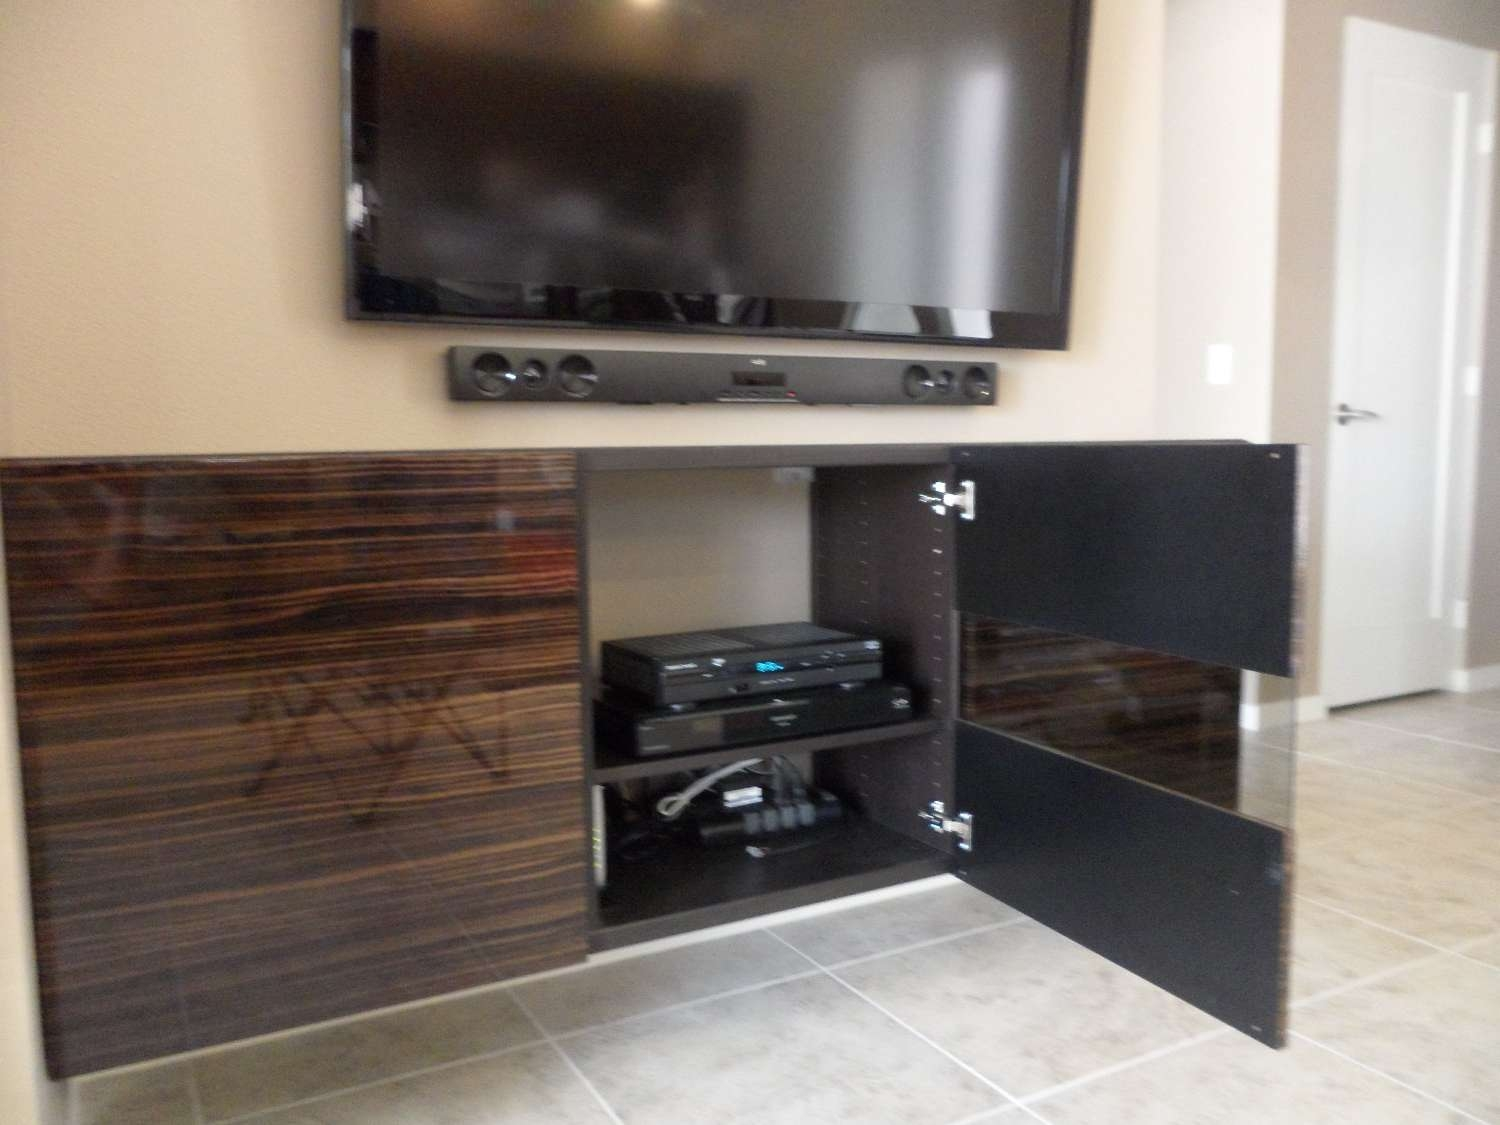 Ikea Tv Stand With Glass Doors Images – Doors Design Ideas In Wall Mounted Tv Cabinets Ikea (View 14 of 20)